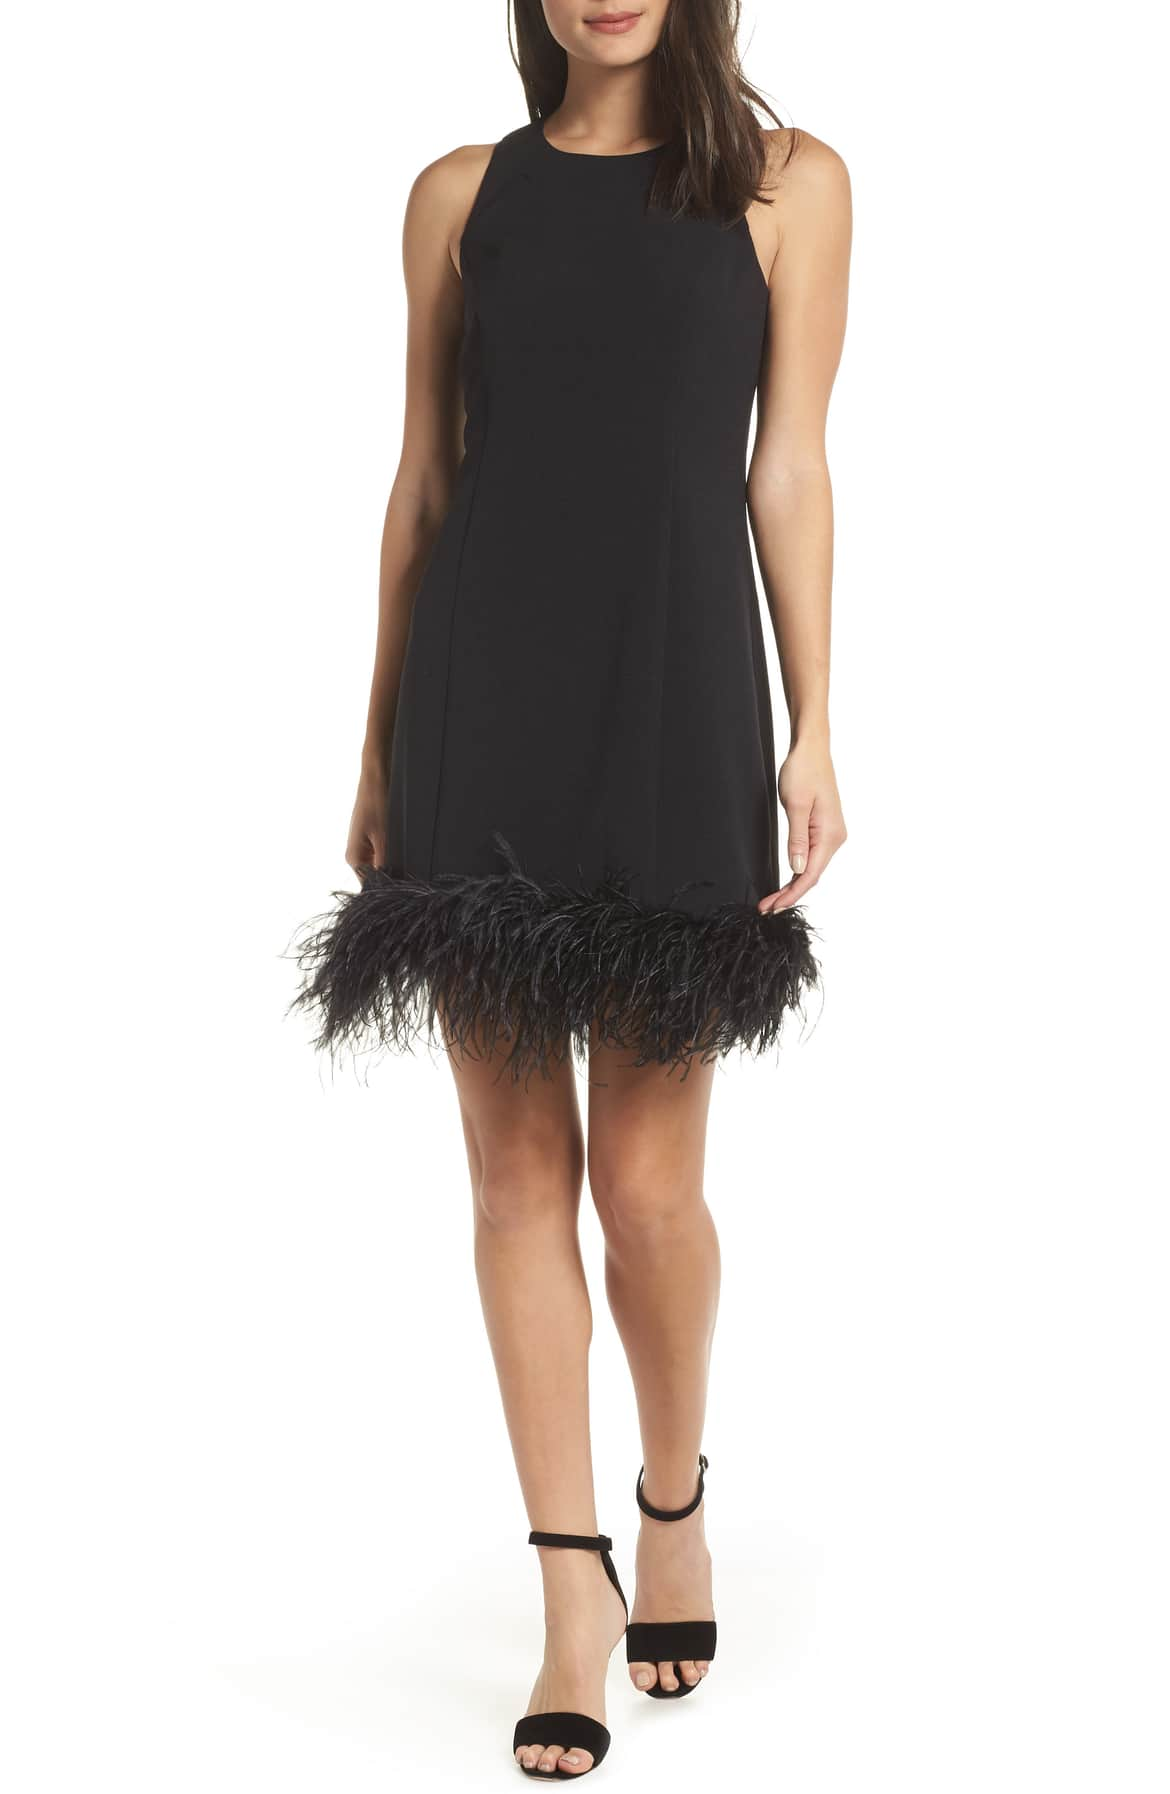 <p>Don't disappoint your party people—arrive in your finest feathers wearing this statement sheath with a hem of ostrich plumes. $159. (Image: Nordstrom){&amp;nbsp;}</p><p></p>